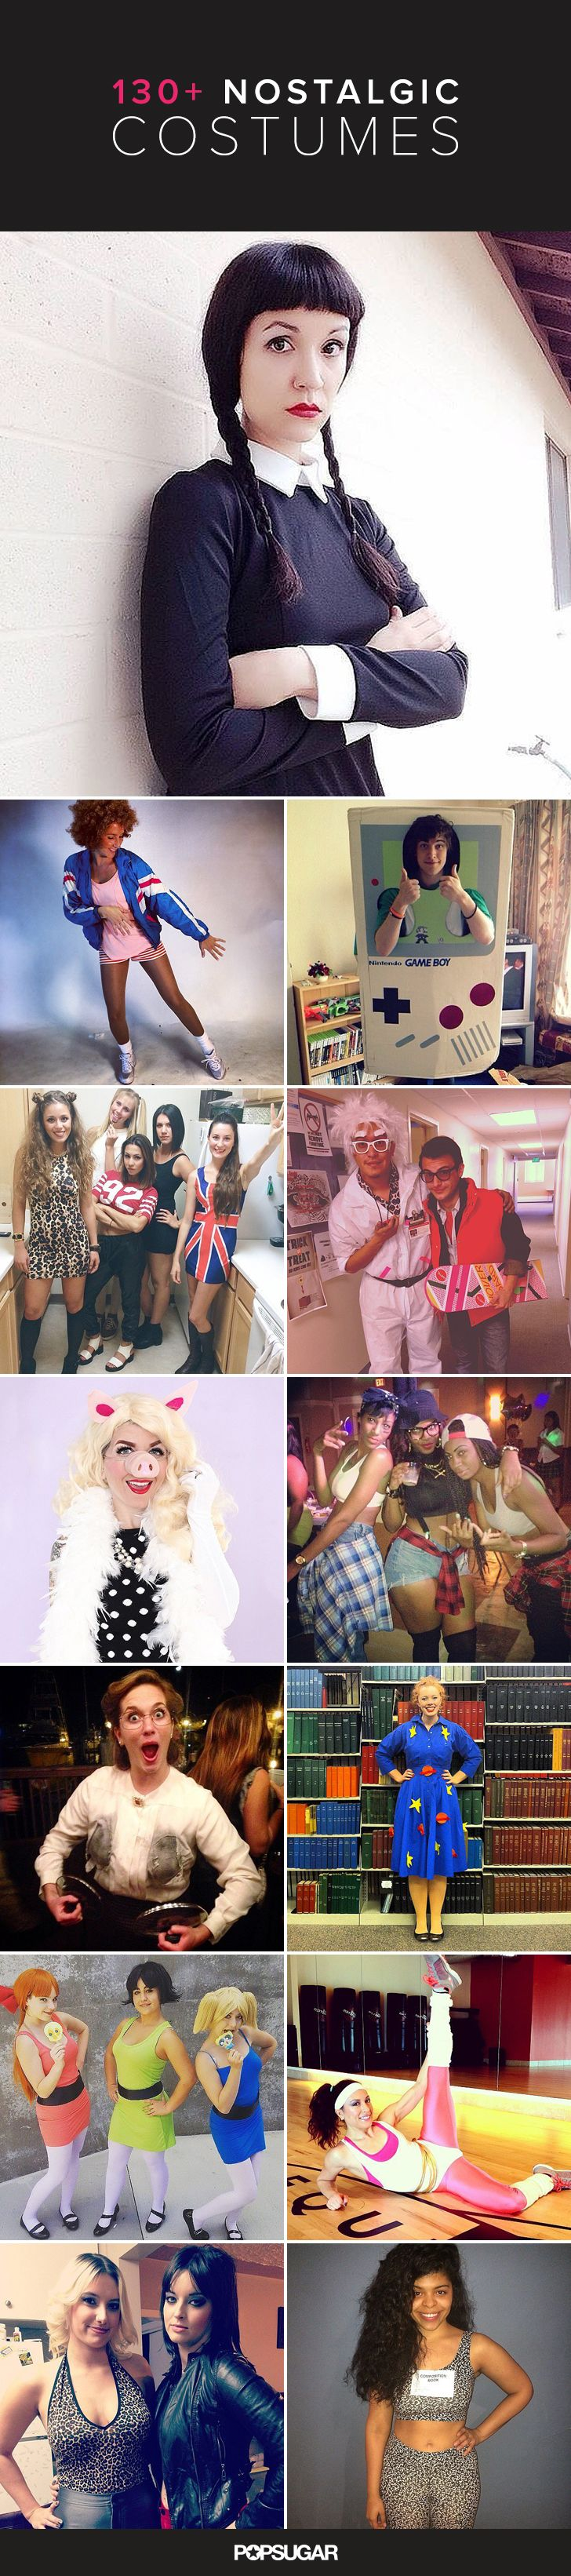 Being an adult is sometimes kind of the worst, so relive your best childhood memories with nostalgic costumes that will take you back in time to the '80s, '90s, and early 2000s.